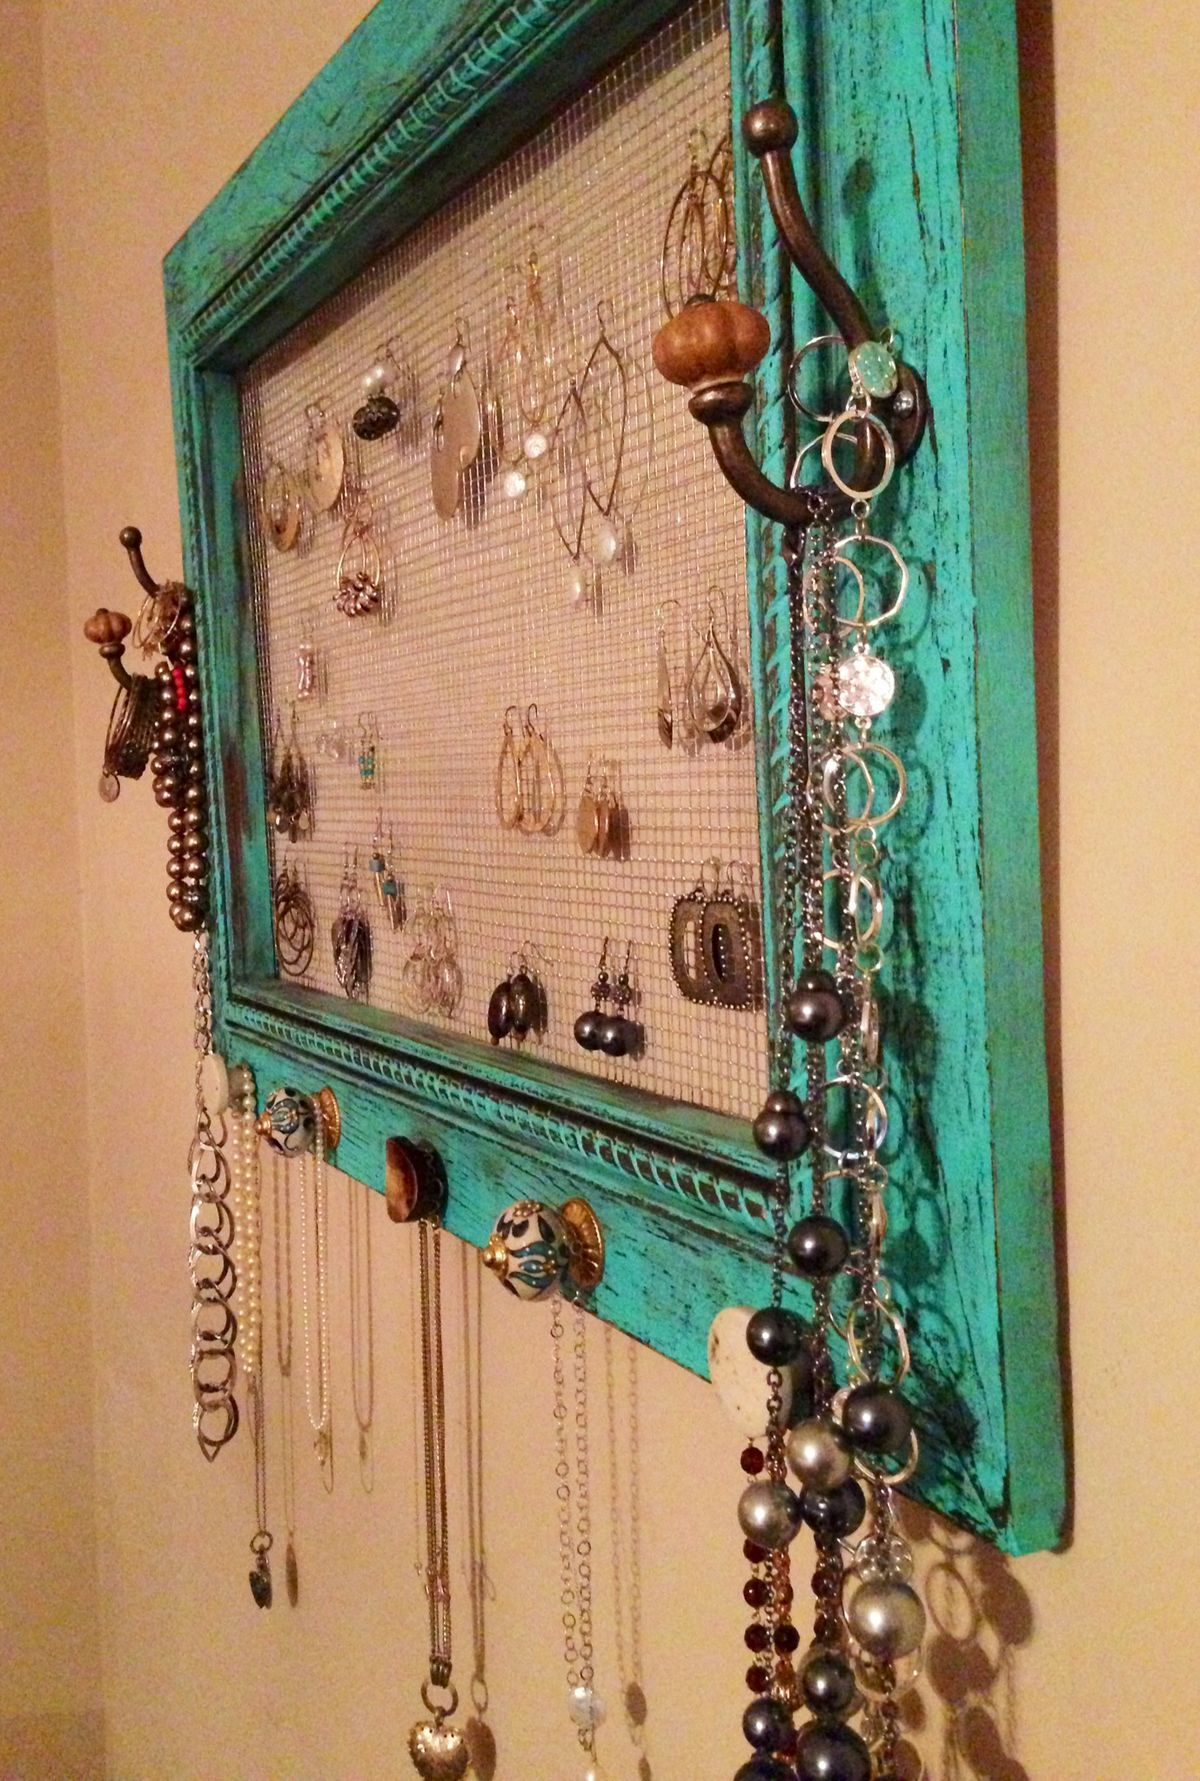 Window display ideas for jewellery   bedroom organizer ideas that you can do it yourself  so crafty